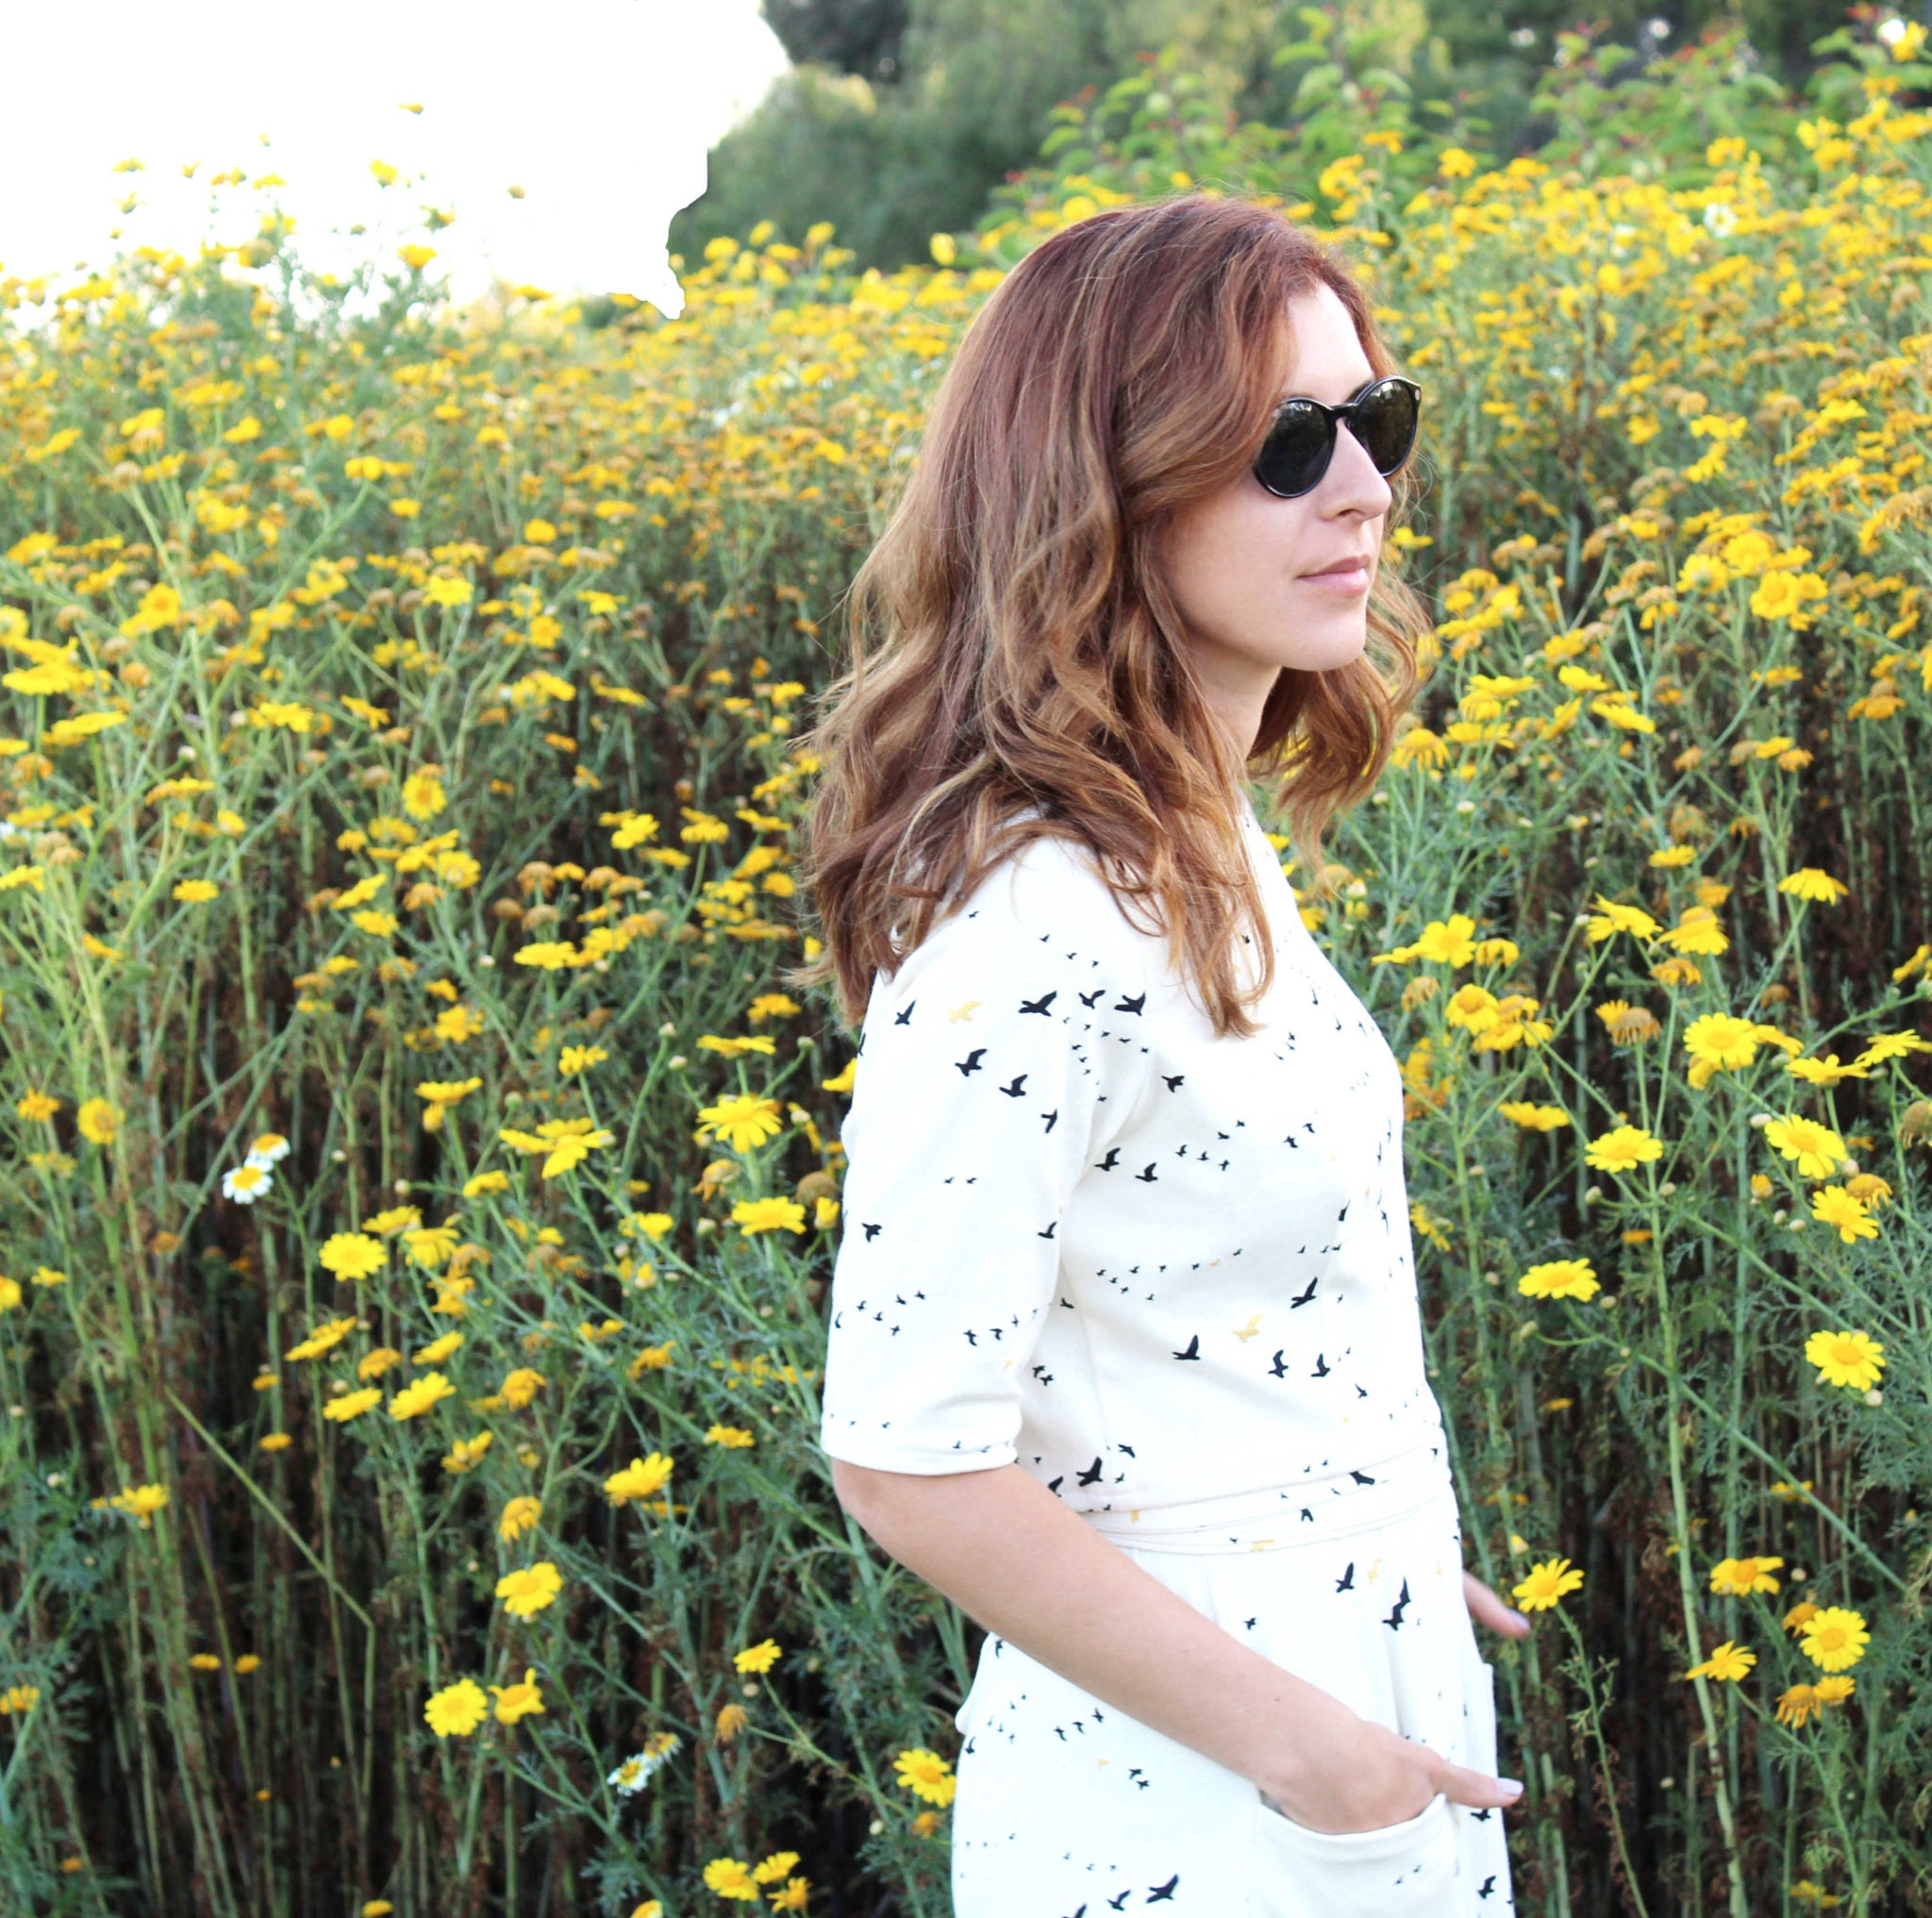 Welcome To The Flora Modiste, A Creative Sewing Blog: The Beginnings